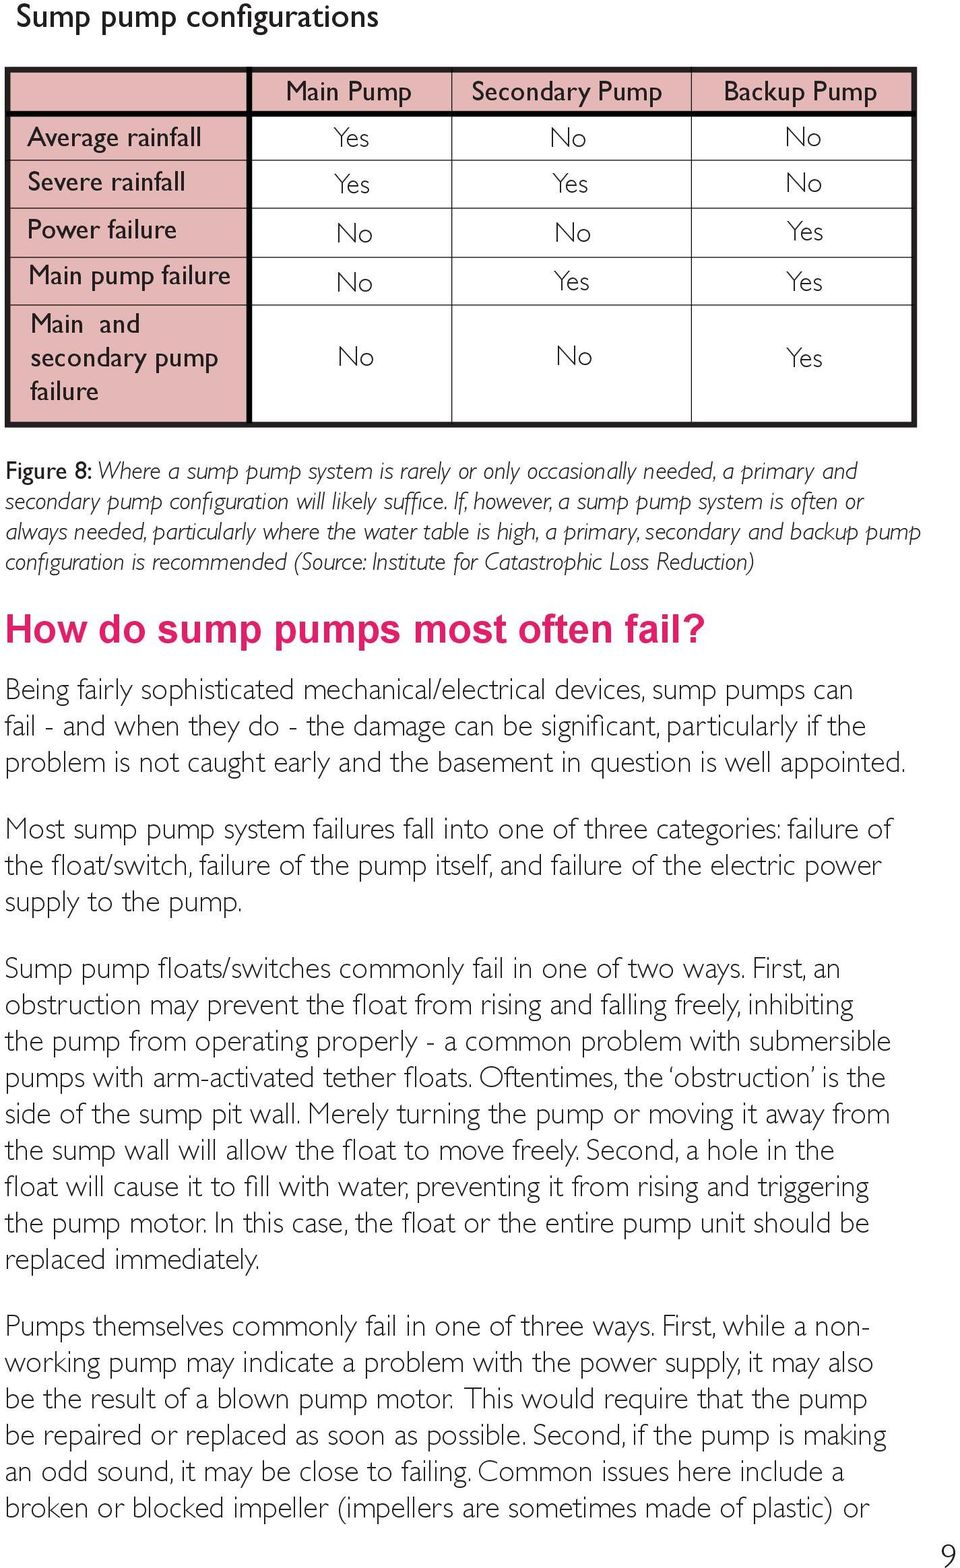 If, however, a sump pump system is often or always needed, particularly where the water table is high, a primary, secondary and backup pump configuration is recommended (Source: Institute for